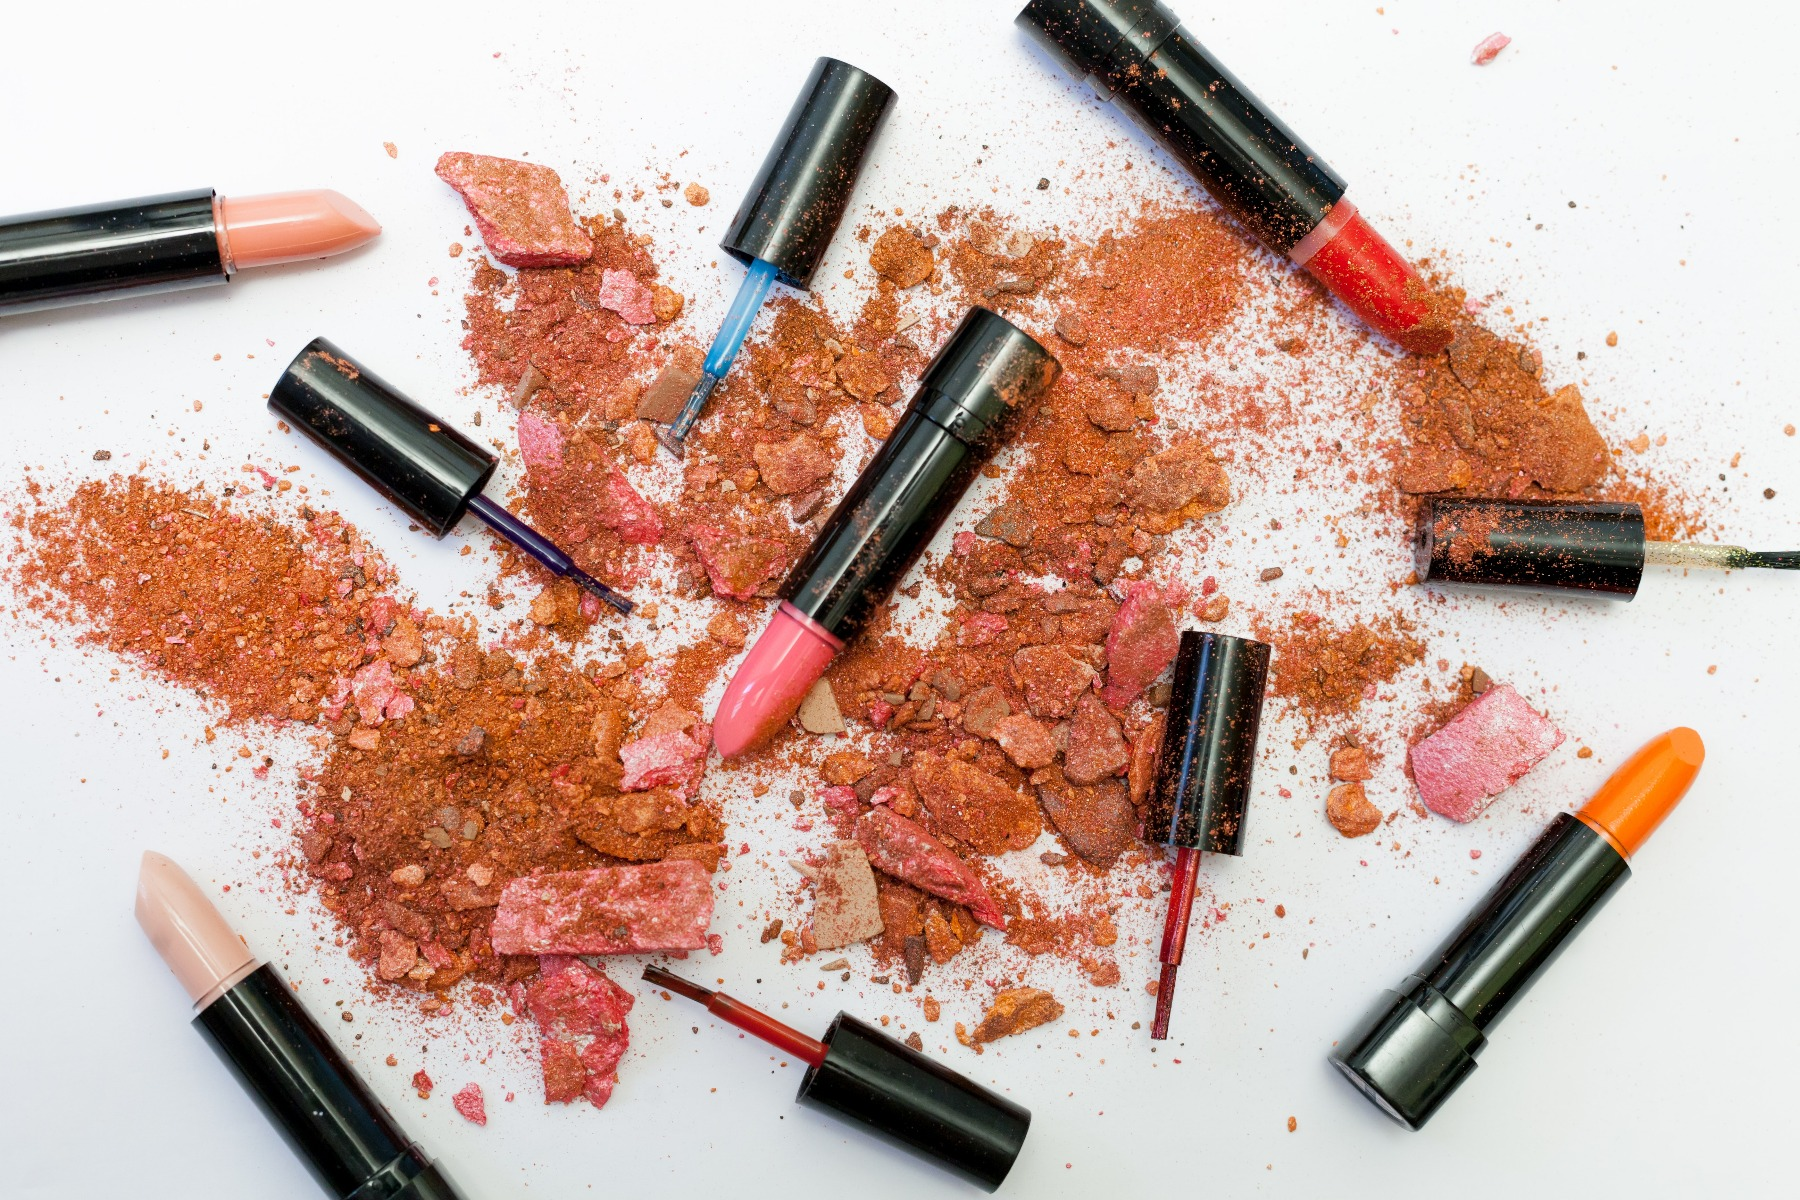 crumbling makeup and lipsticks